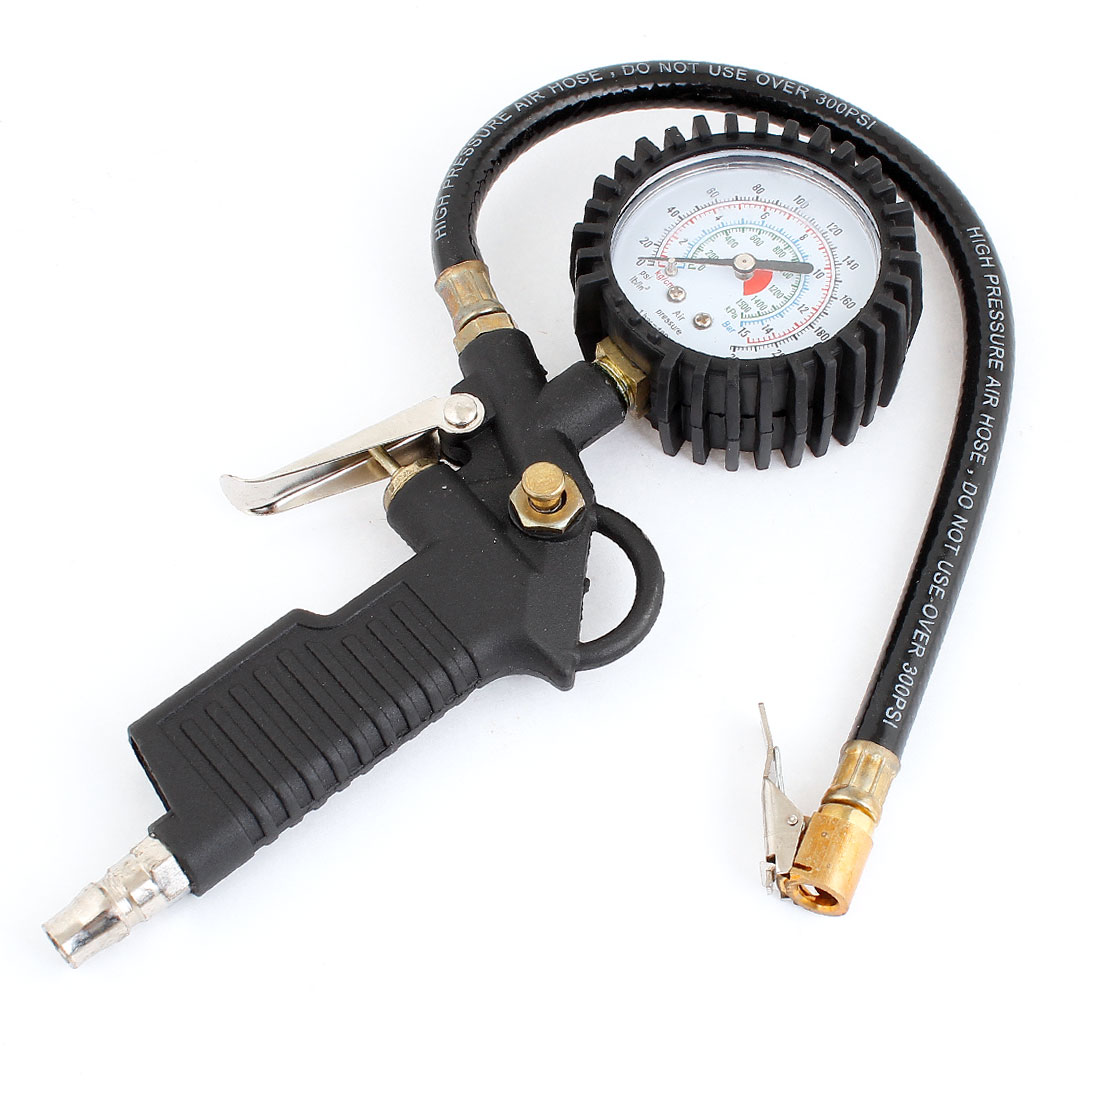 Auto Car Tire Air Pressure Gauge Meter Inflator Gun + Flexible Hose